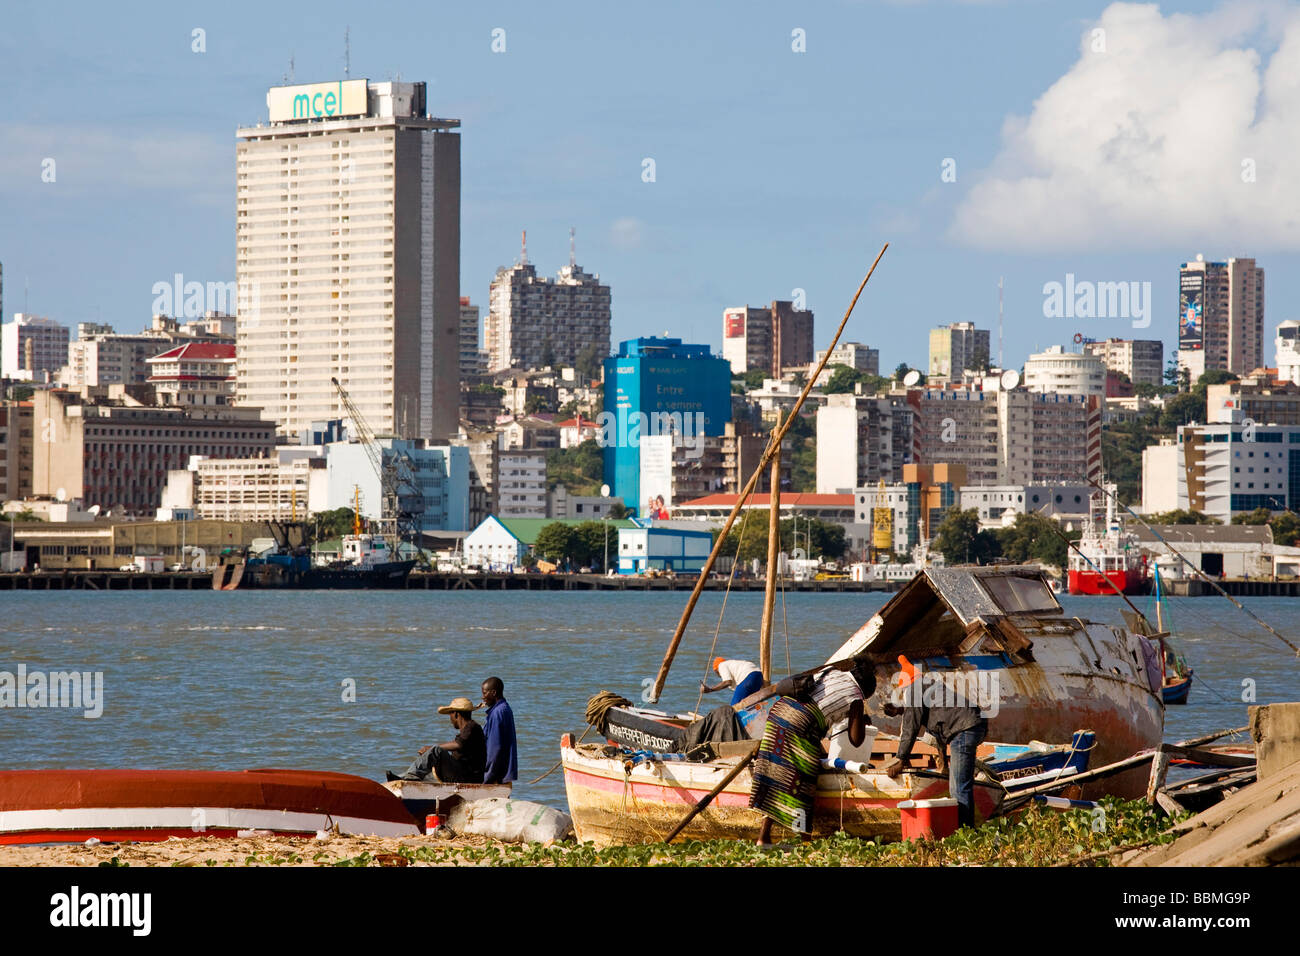 Mozambique, Maputo. Fishermen and their boats in the small fishing village of Catembe. - Stock Image